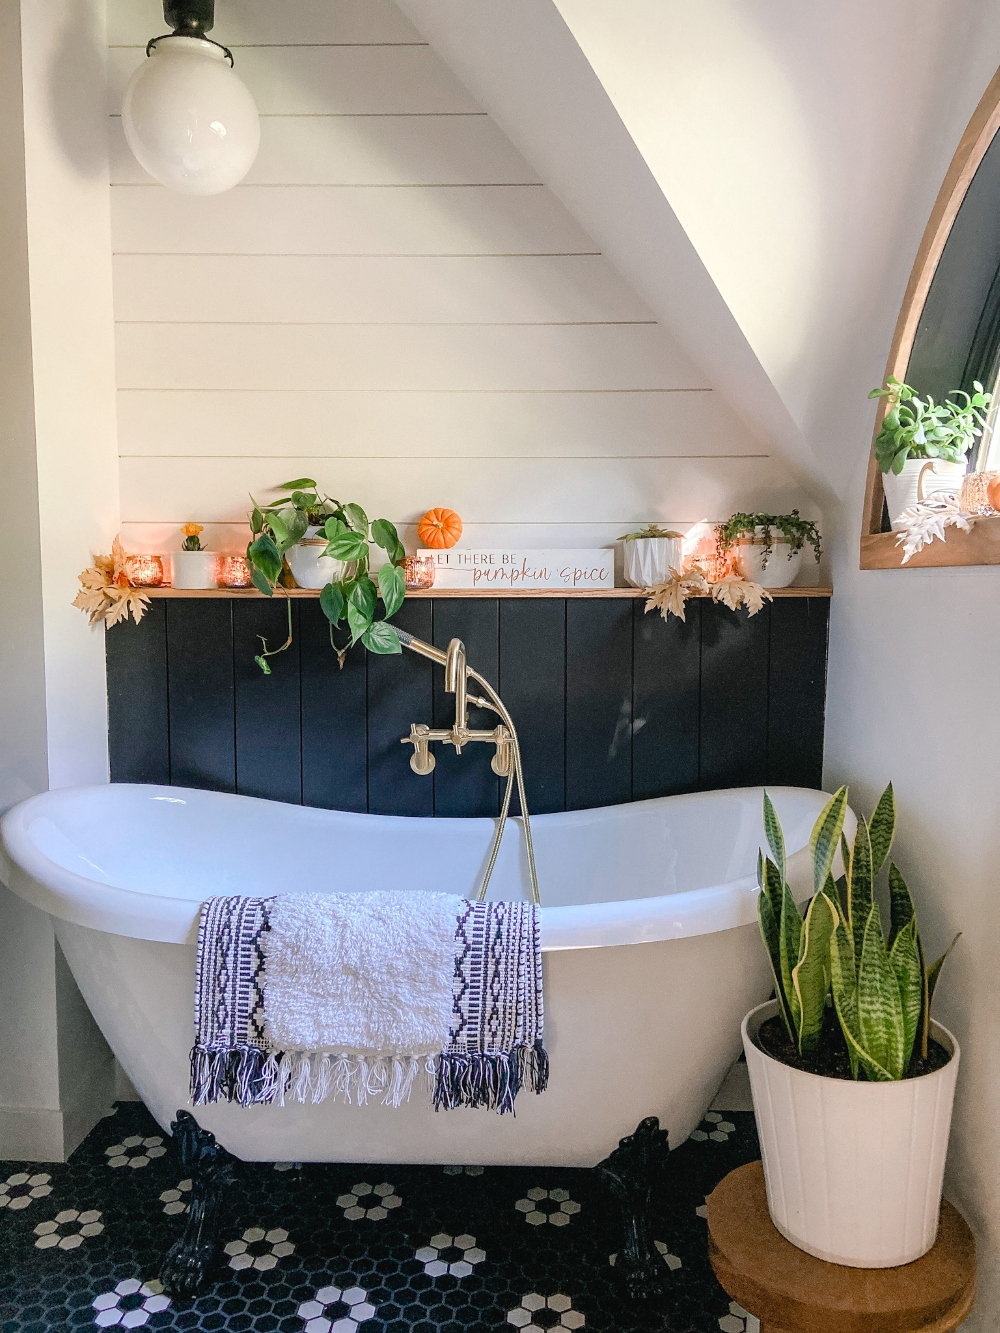 Our New Bedroom and Bathroom Decorated for Fall! Step inside our cozy 1891 bedroom and bathroom remodel with warm rustic touches.